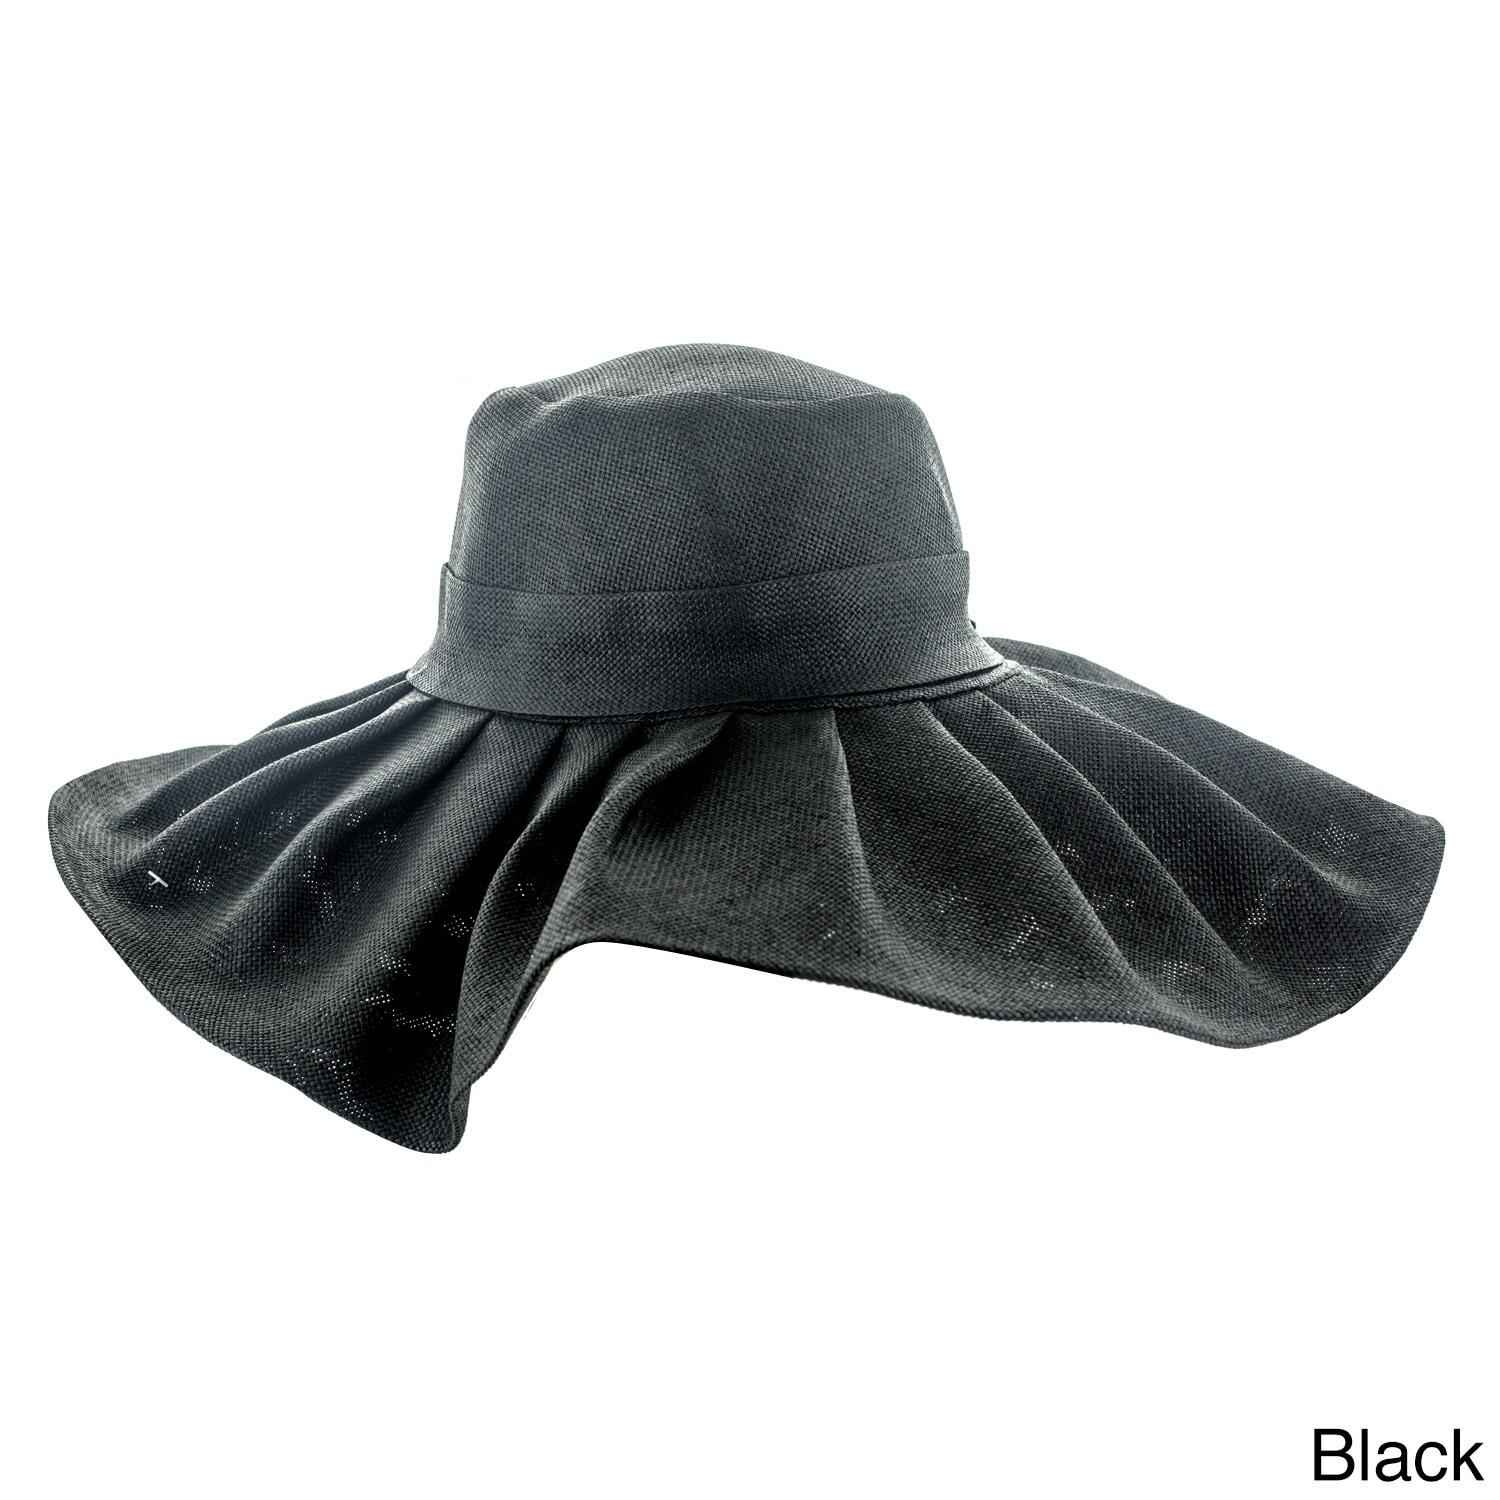 Shop Faddism Women s Floppy Sun Hat with Ruffled Rim - Free Shipping ... 5588f5edc6e